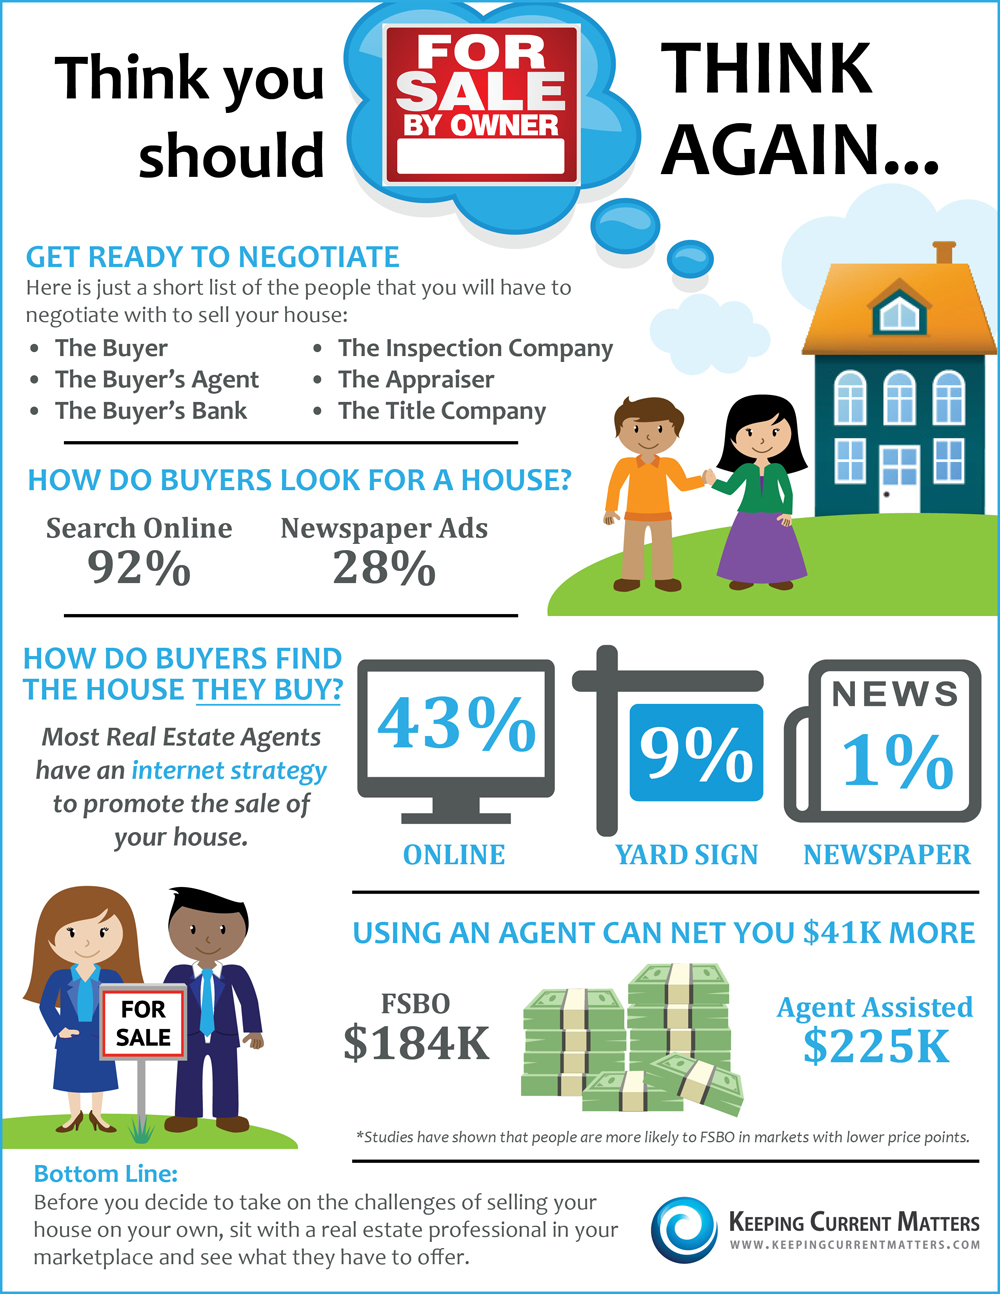 think you should for sale by owner think again infographic